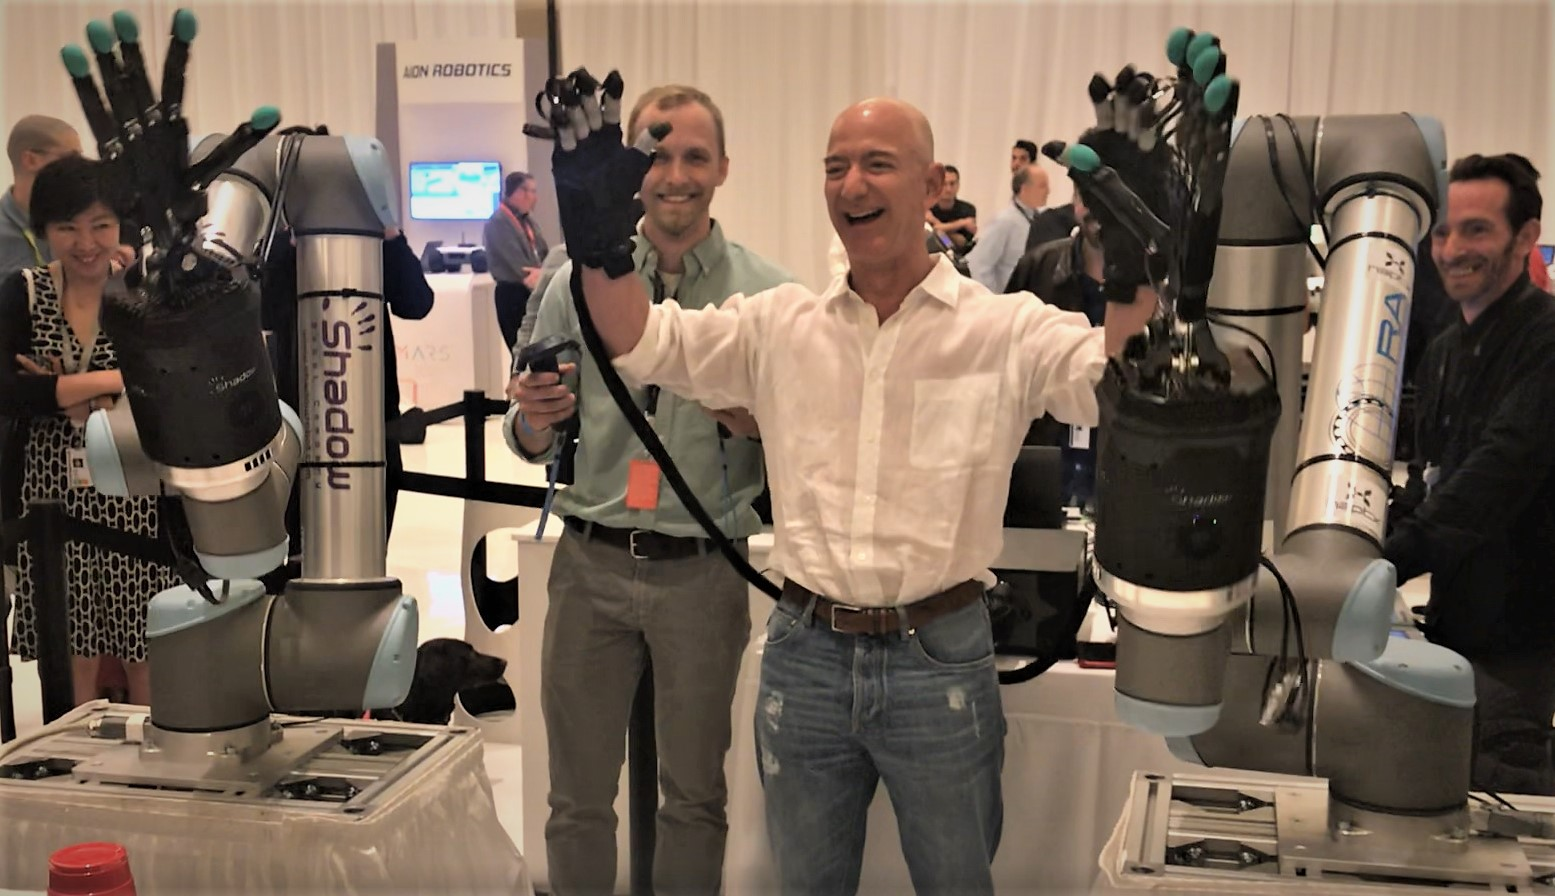 نتيجة بحث الصور عن ‪.@JeffBezos tries his hand at operating @HaptX @shadowrobot hand at #reMARS exhibit - and reacts with his famous laugh:‬‏